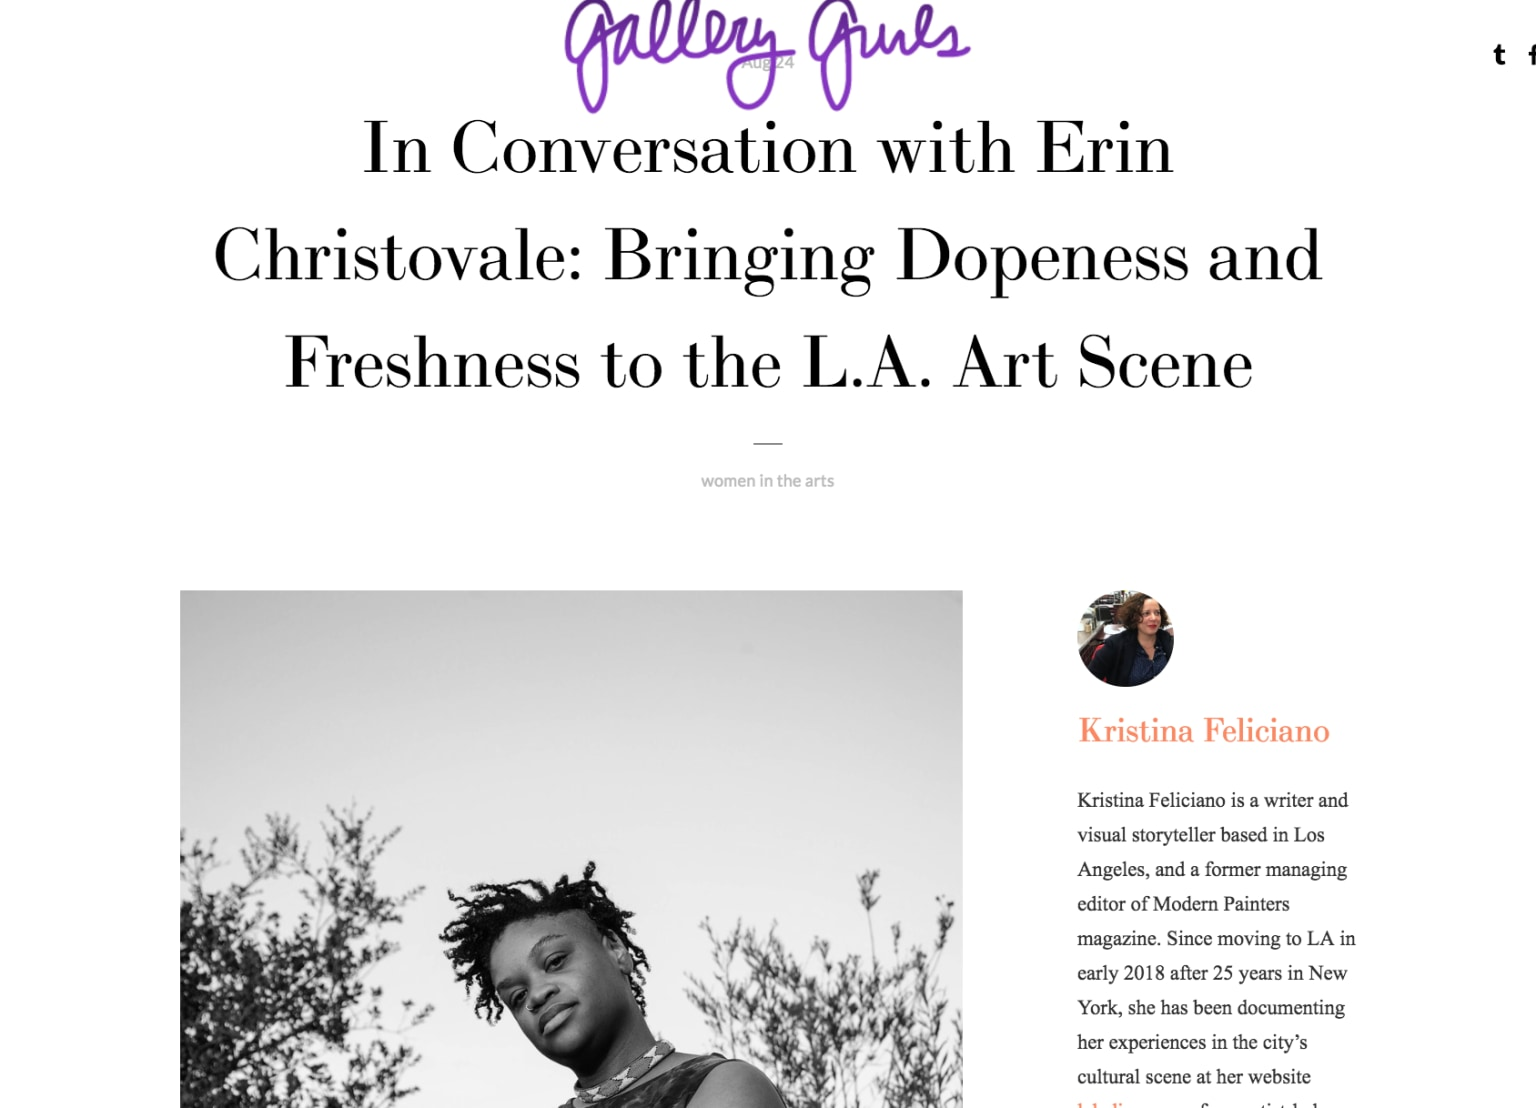 Erin Christovale for Gallery Gurls